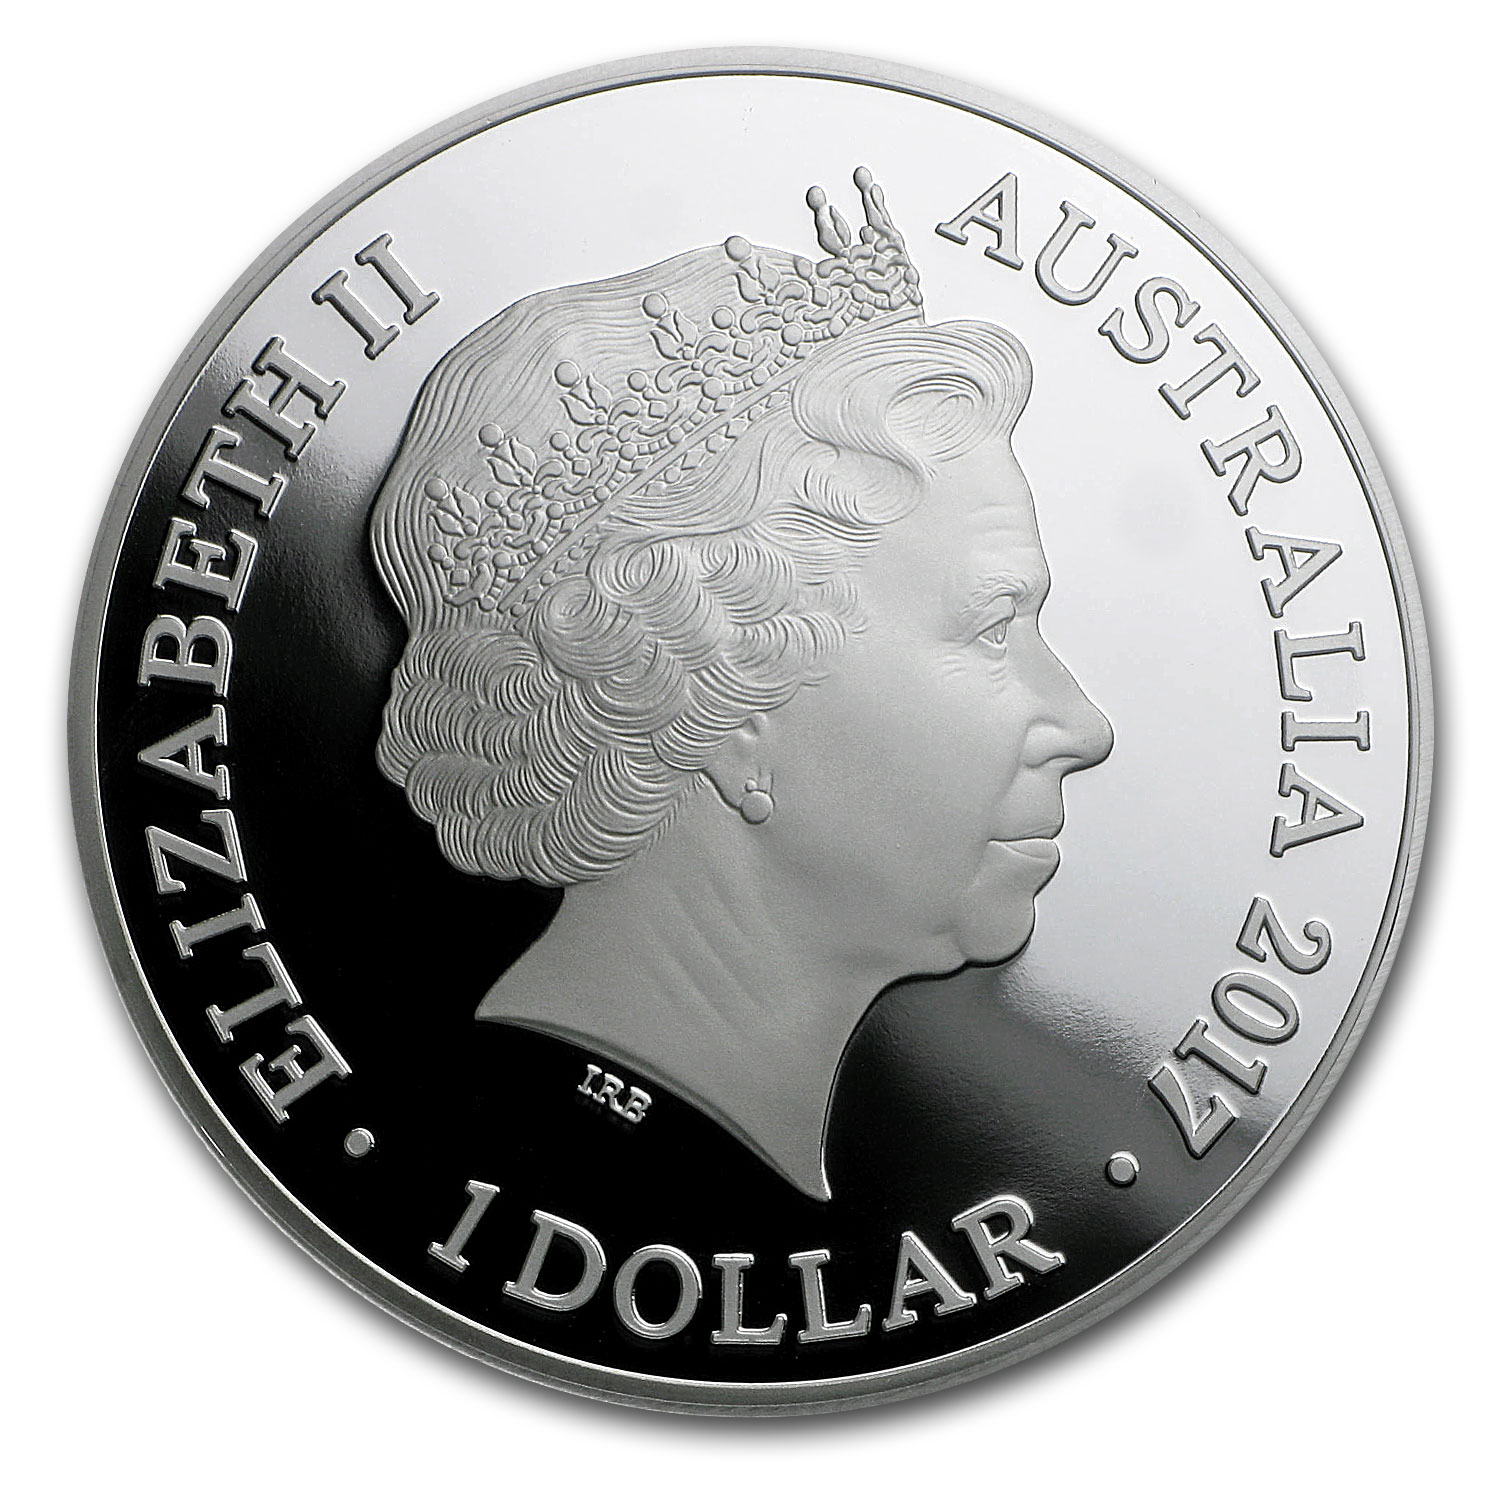 2017 Australia 1 oz Silver Year of the Rooster Proof